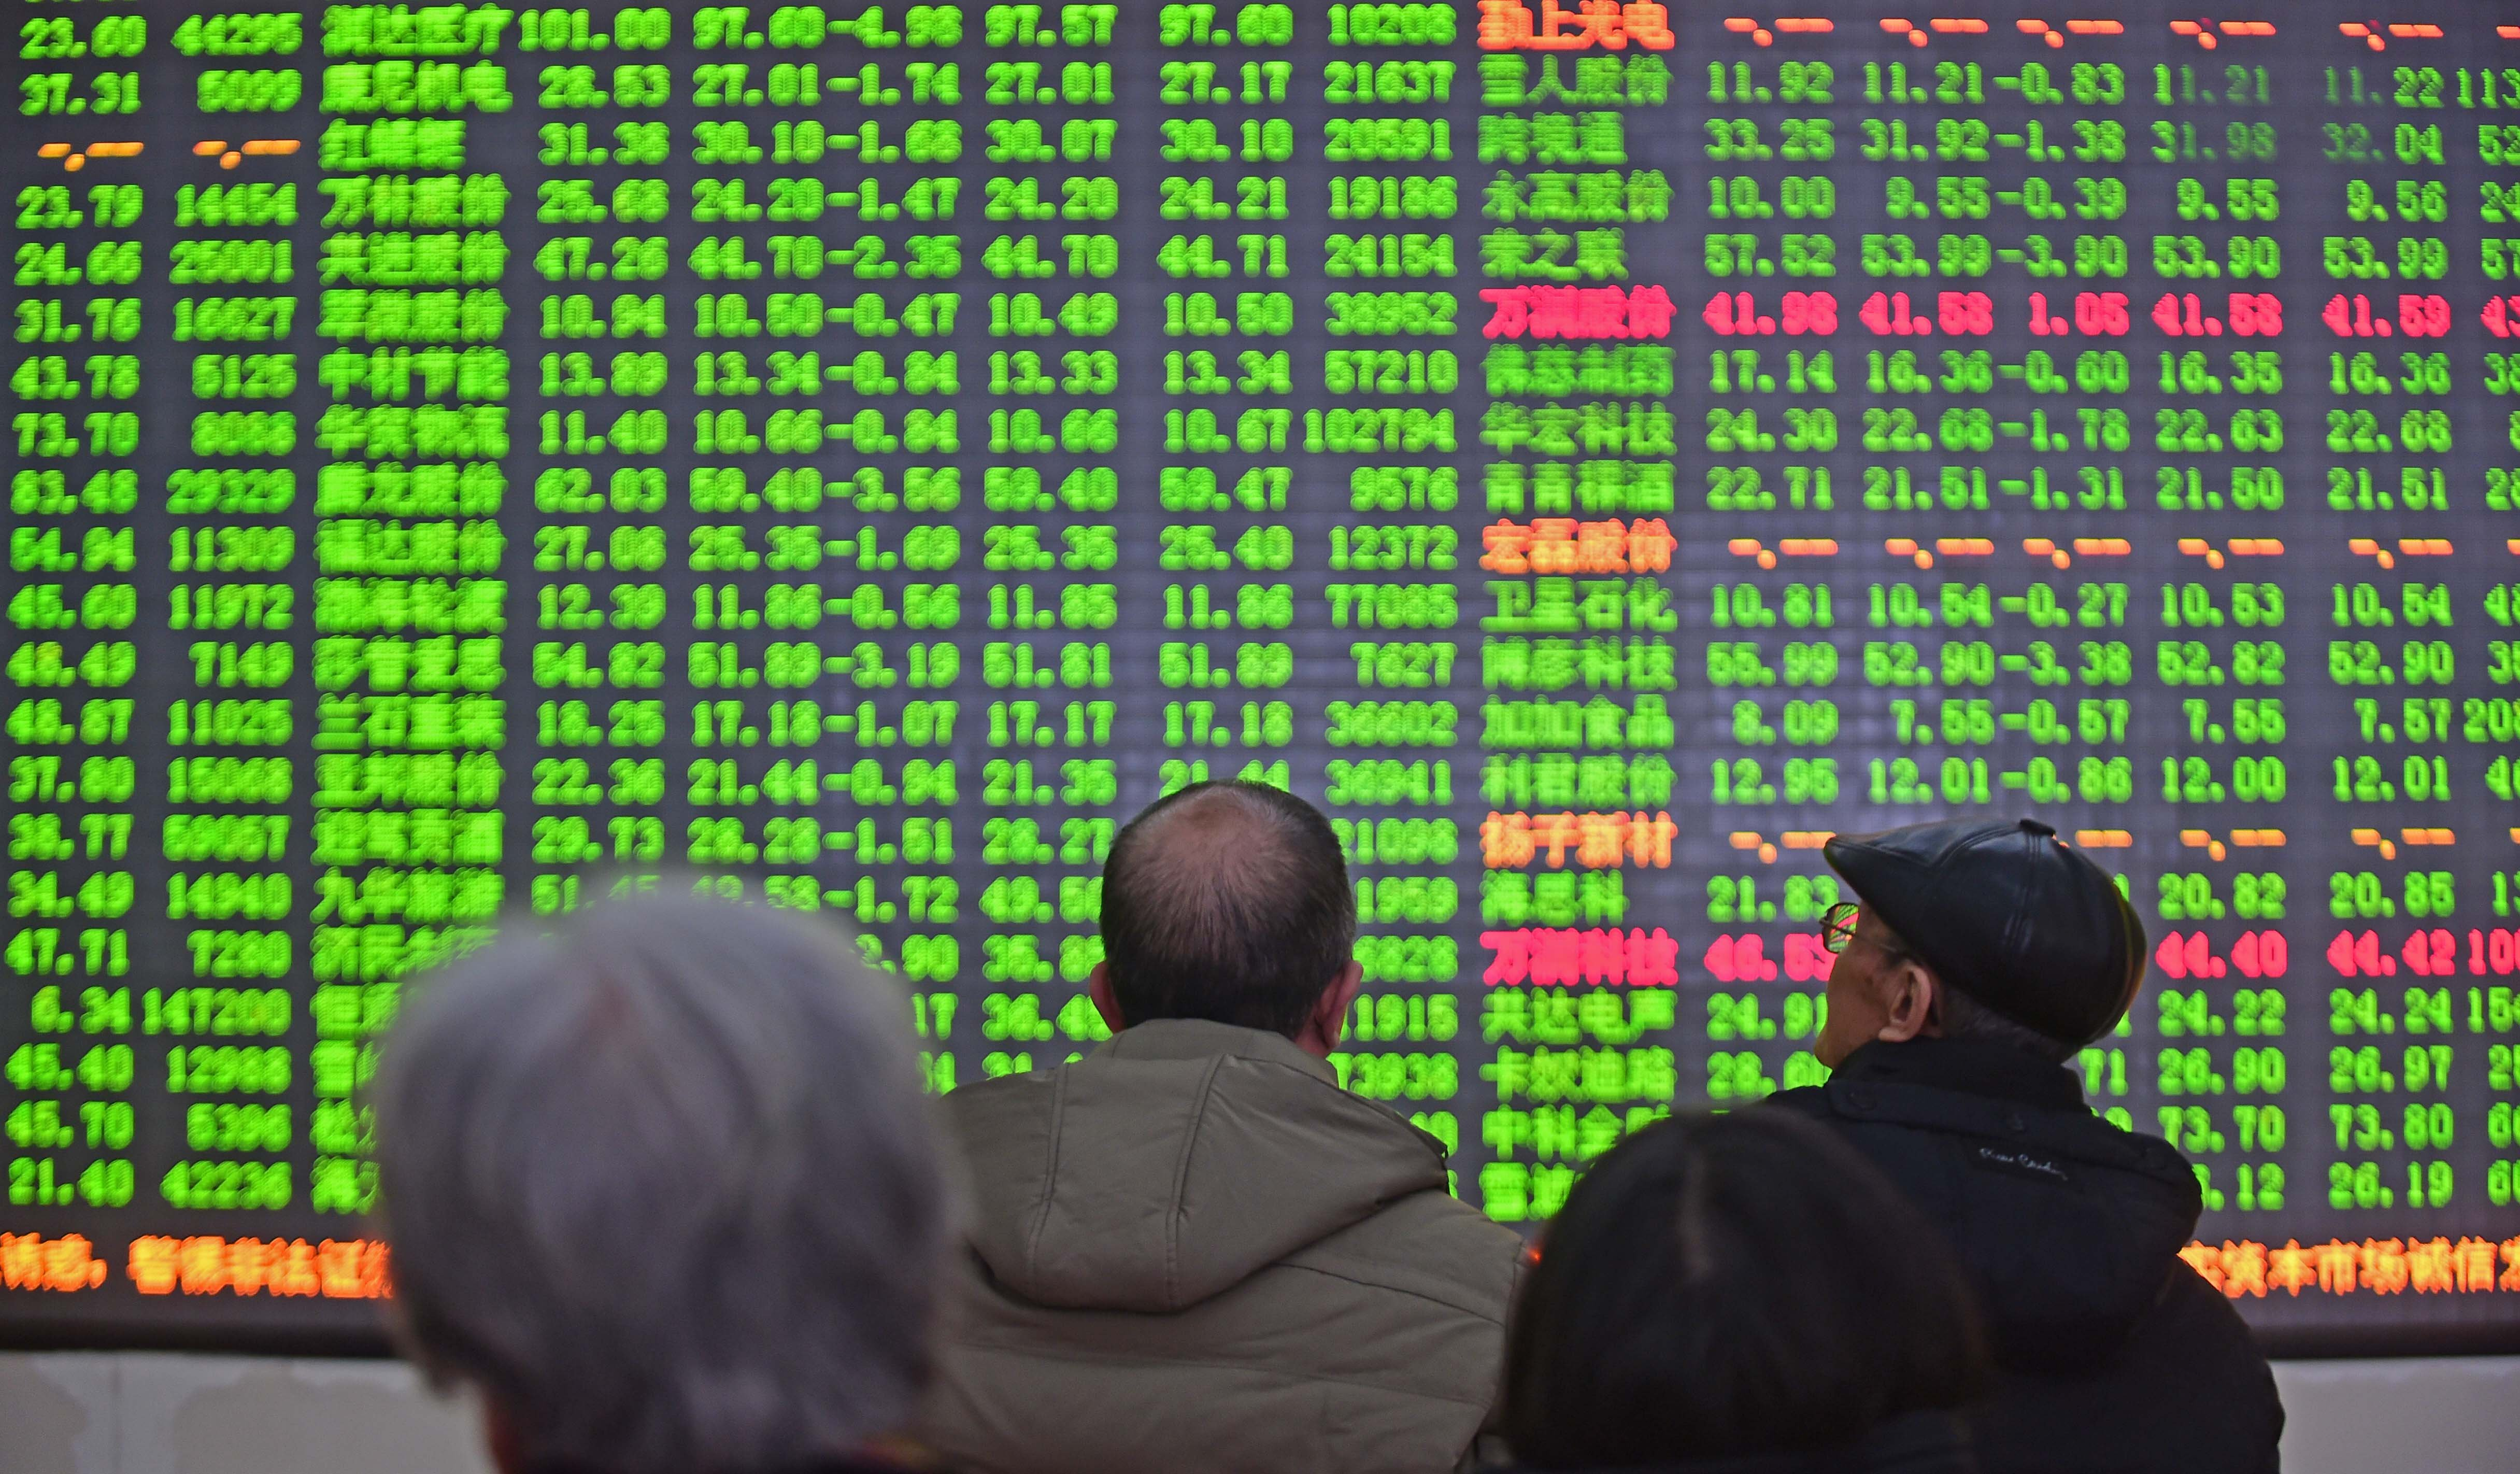 Investors look through stock information at a trading hall in Shenyang, China on Jan. 4, 2016.